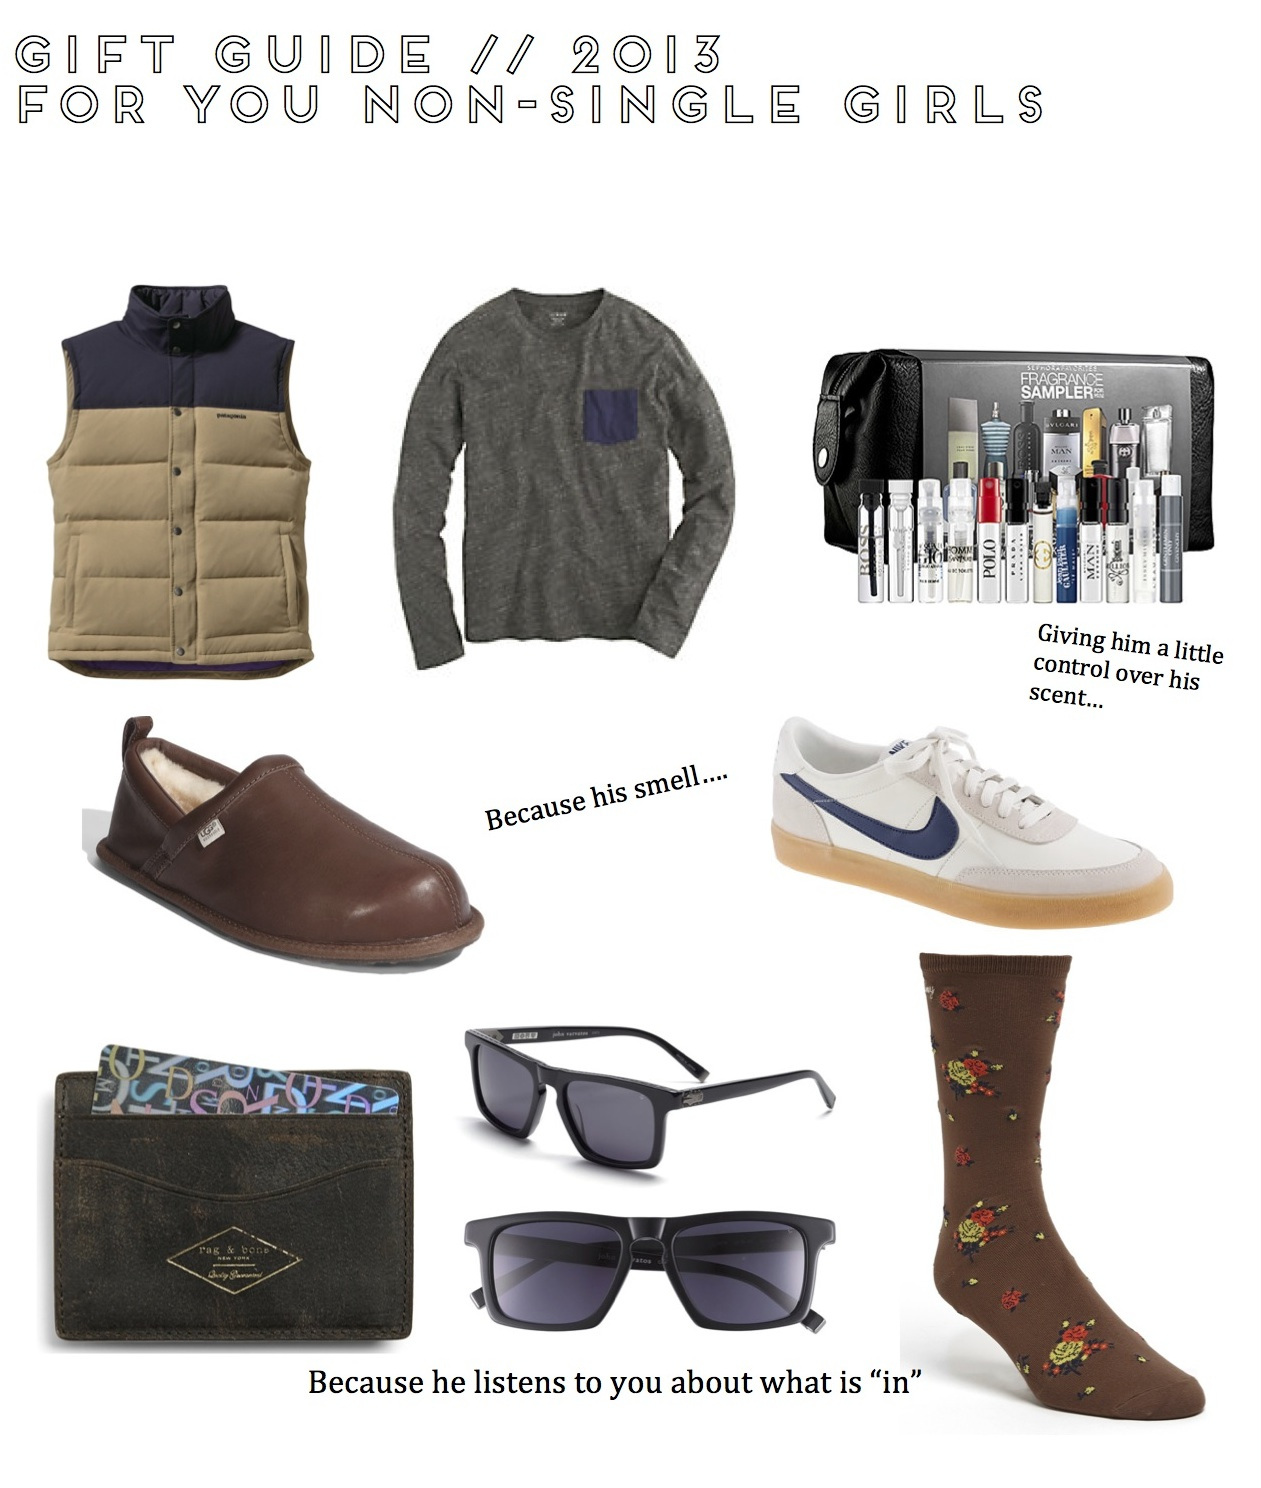 cfa3f77518a7 gift guide 2013 men - The Locus of Style